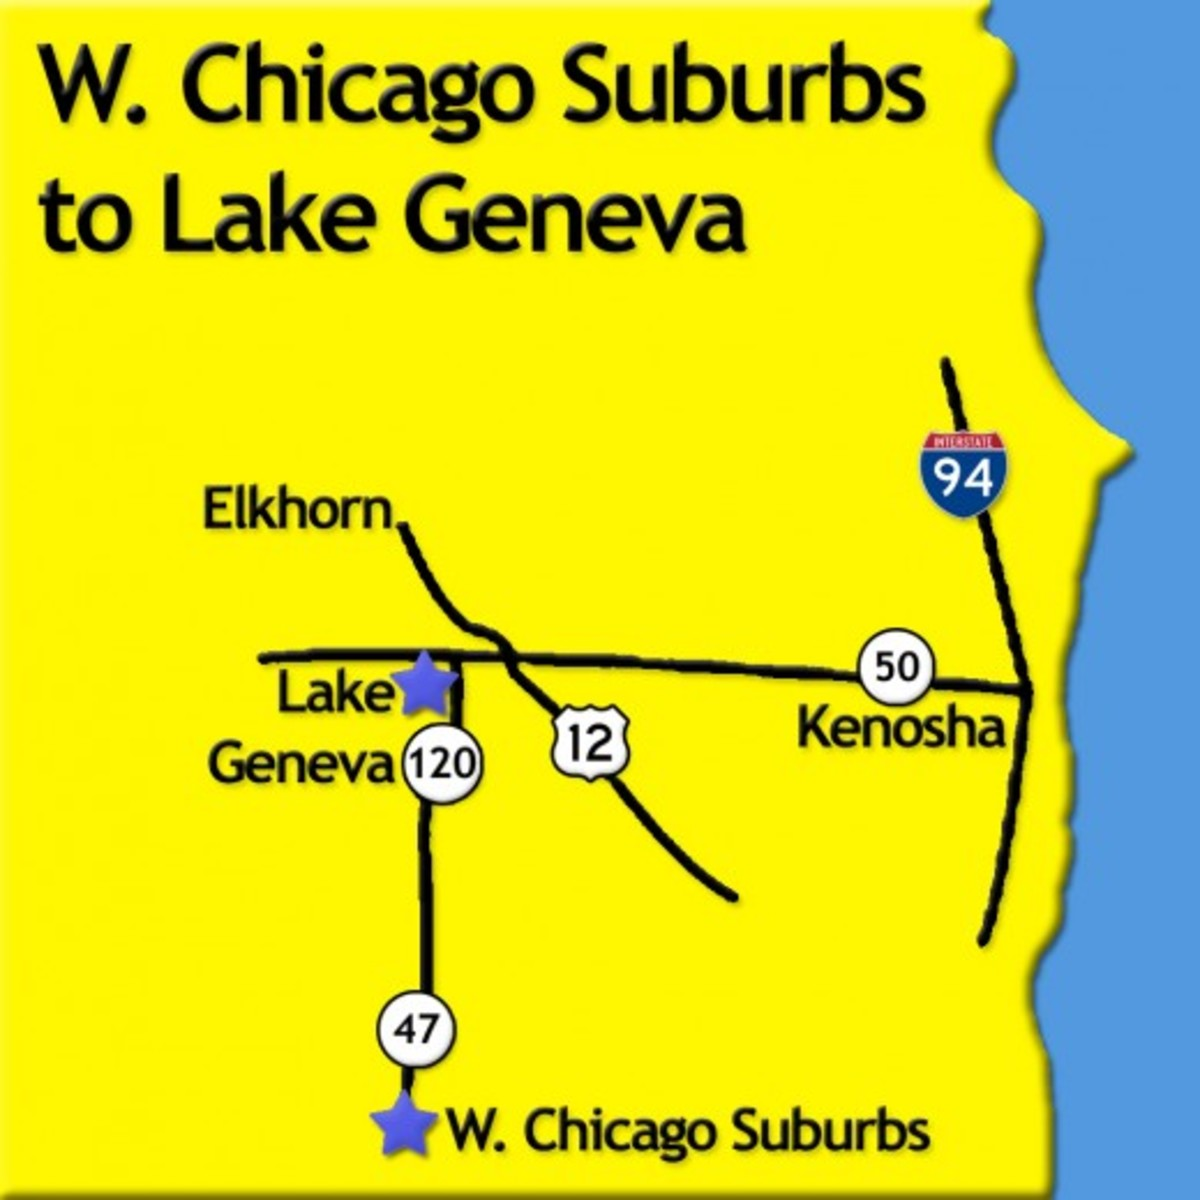 Road Map from Westerns Suburbs of Chicago to Lake Geneva, Wisconsin (photo courtesy of GmaGoldie)